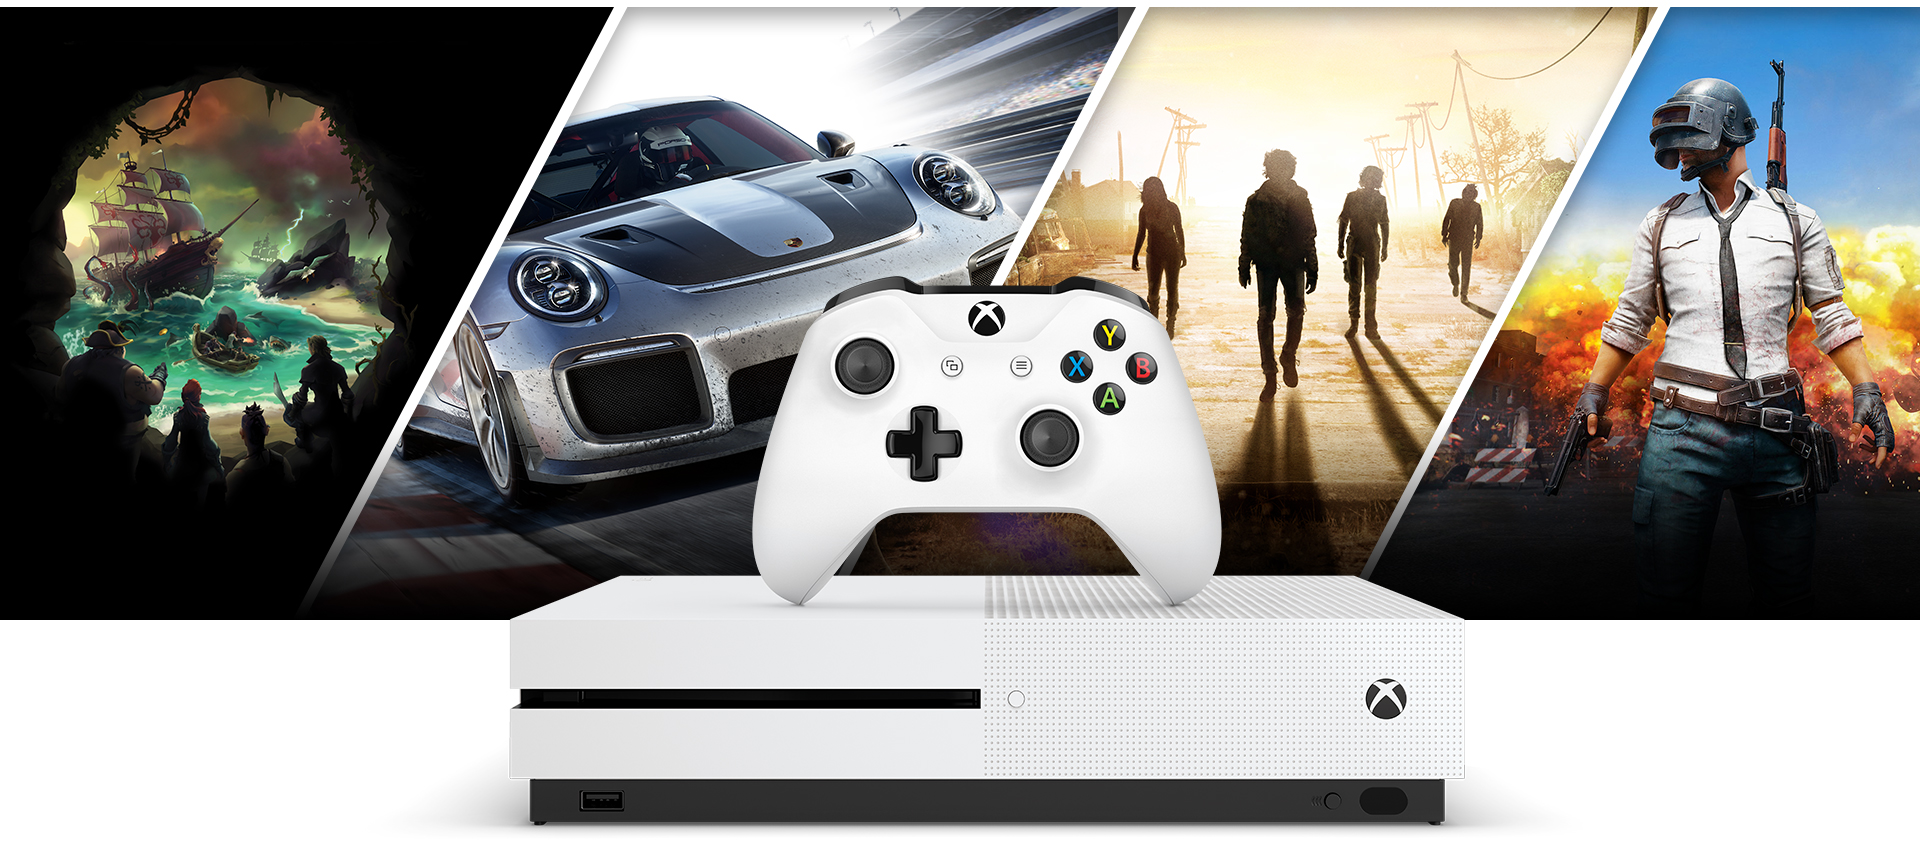 Images de Sea of Thieves, Forza 7, State of Decay 3 et PlayerUnknown's Battlegrounds derrière une console Xbox One S et une manette Xbox blanches